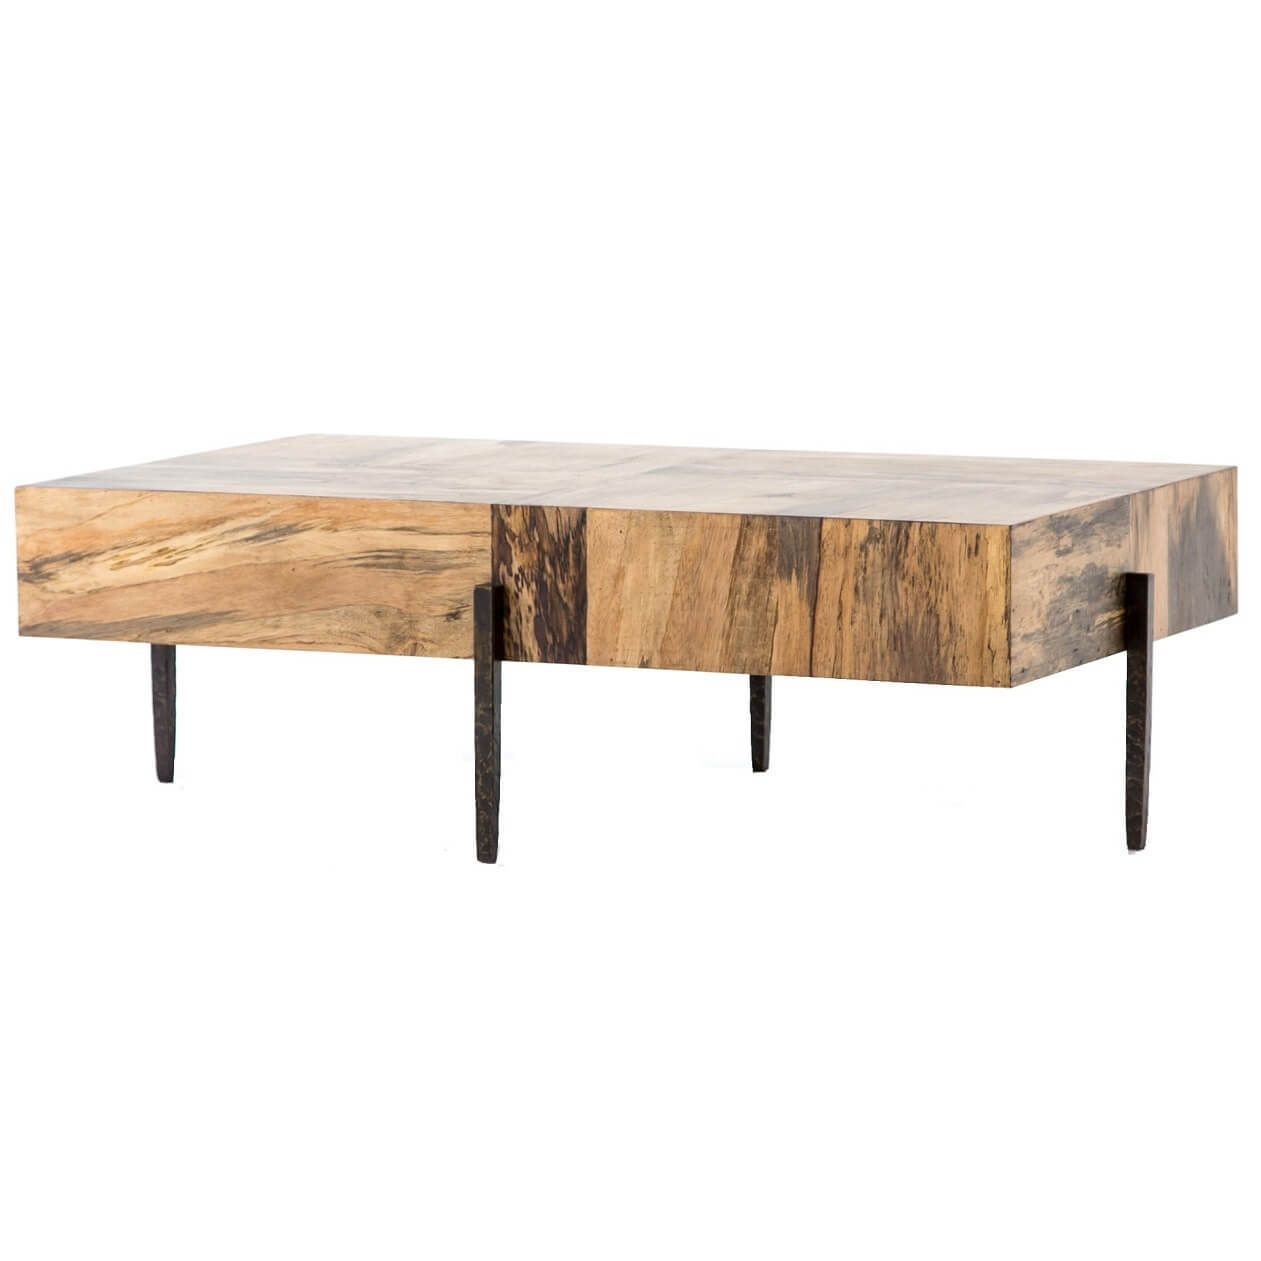 Inkas Spalted Primavera Wood Block Coffee Table 52 Coffee Table Iron Coffee Table Round Wood Coffee Table